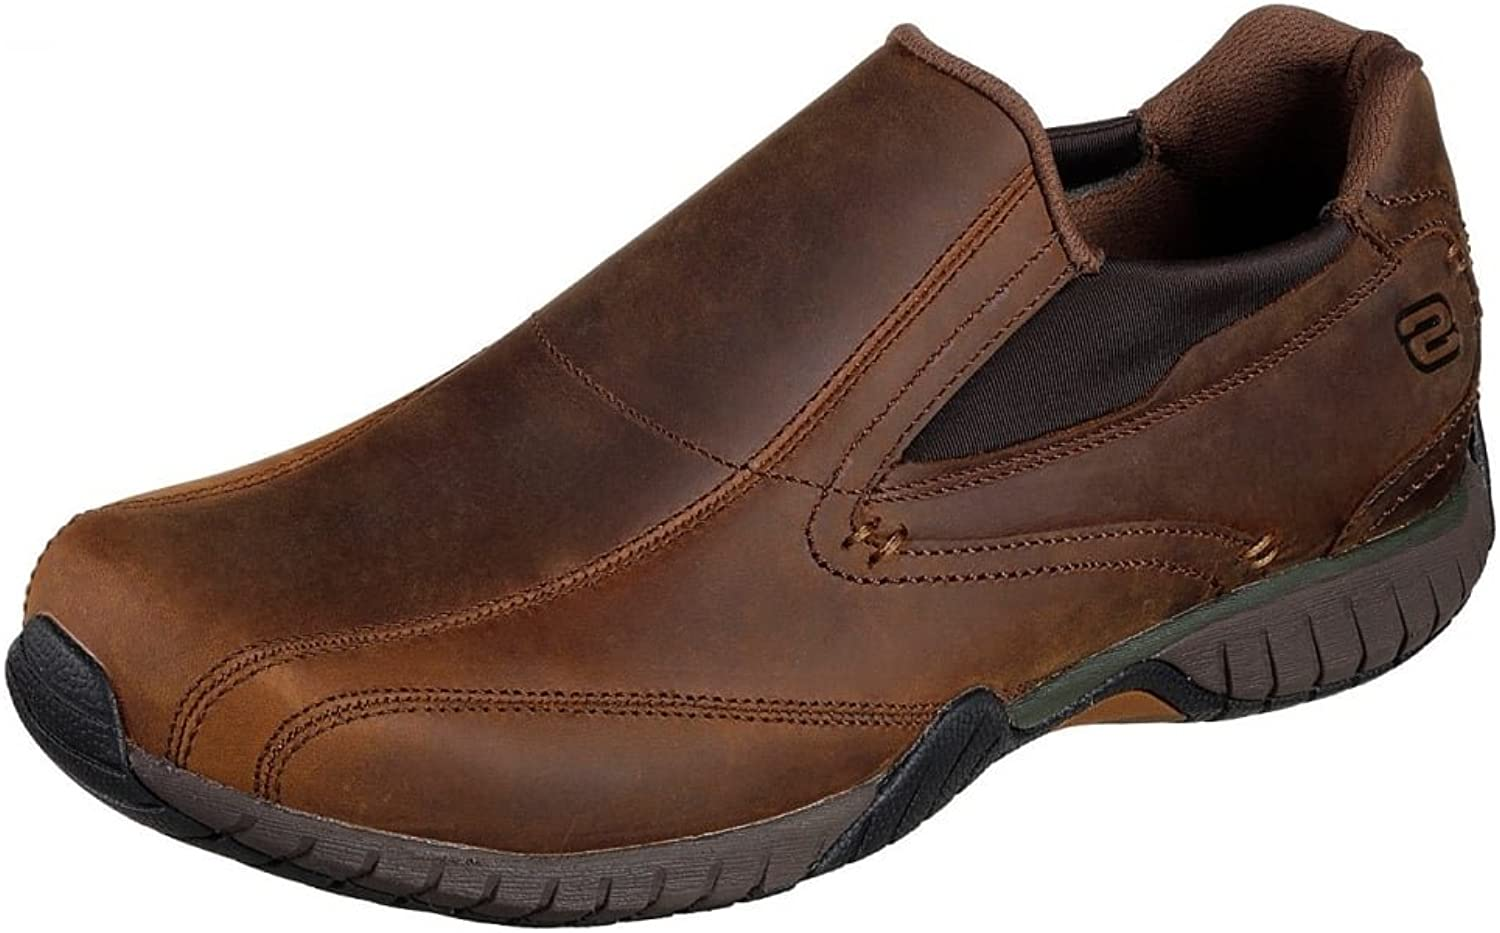 Skechers Classic Fit  Sendro - Bascom Brown Leather shoes 6.5